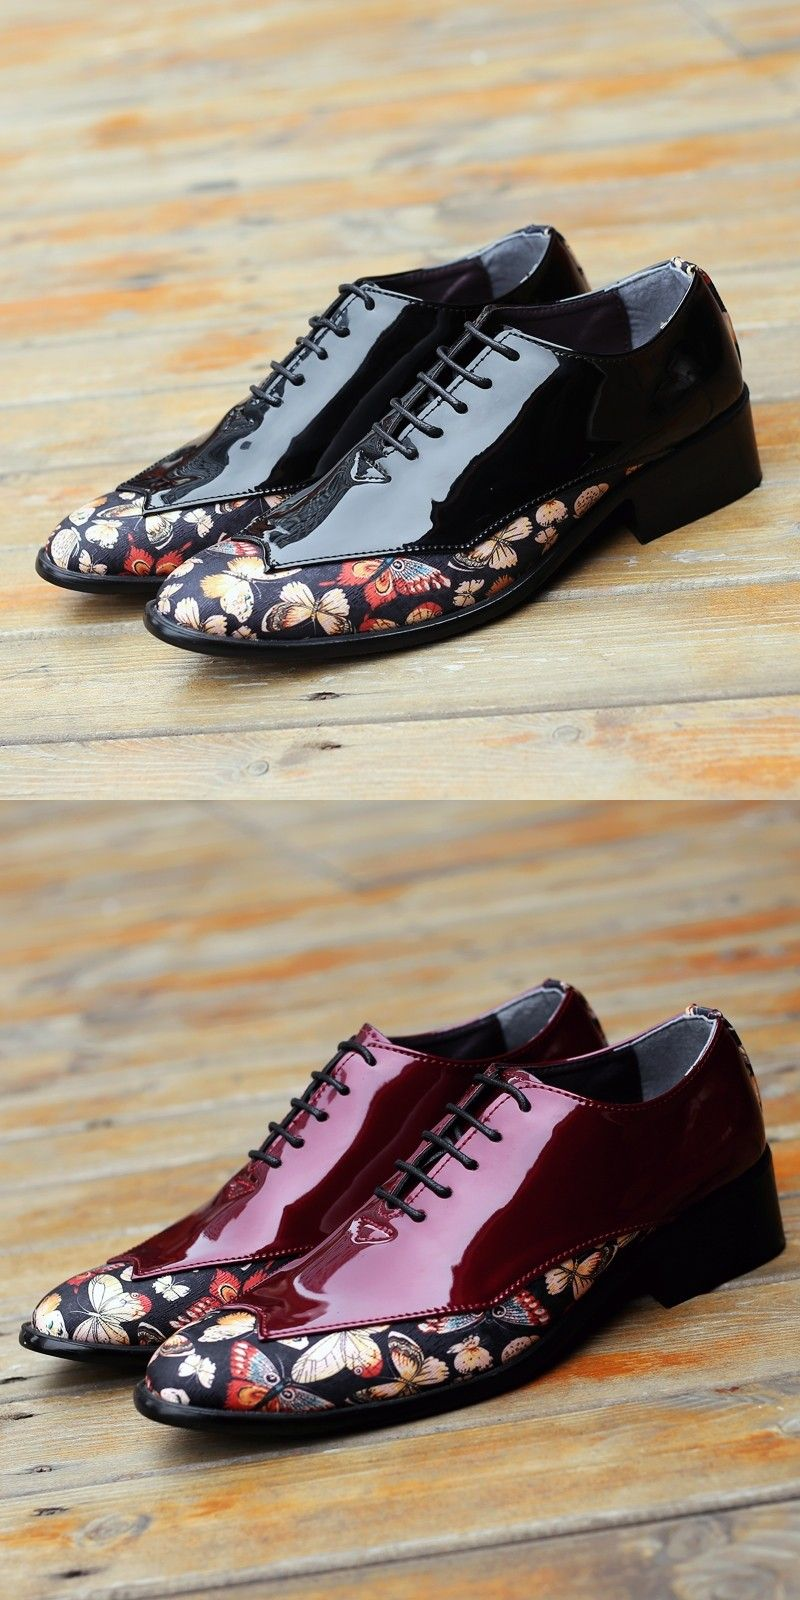 US $24 4 Click to buy> Prelesty Men Dress Oxfords Shoes Party Formal Meeting Wedding Handsome Shiny Flowers is part of Shoes -